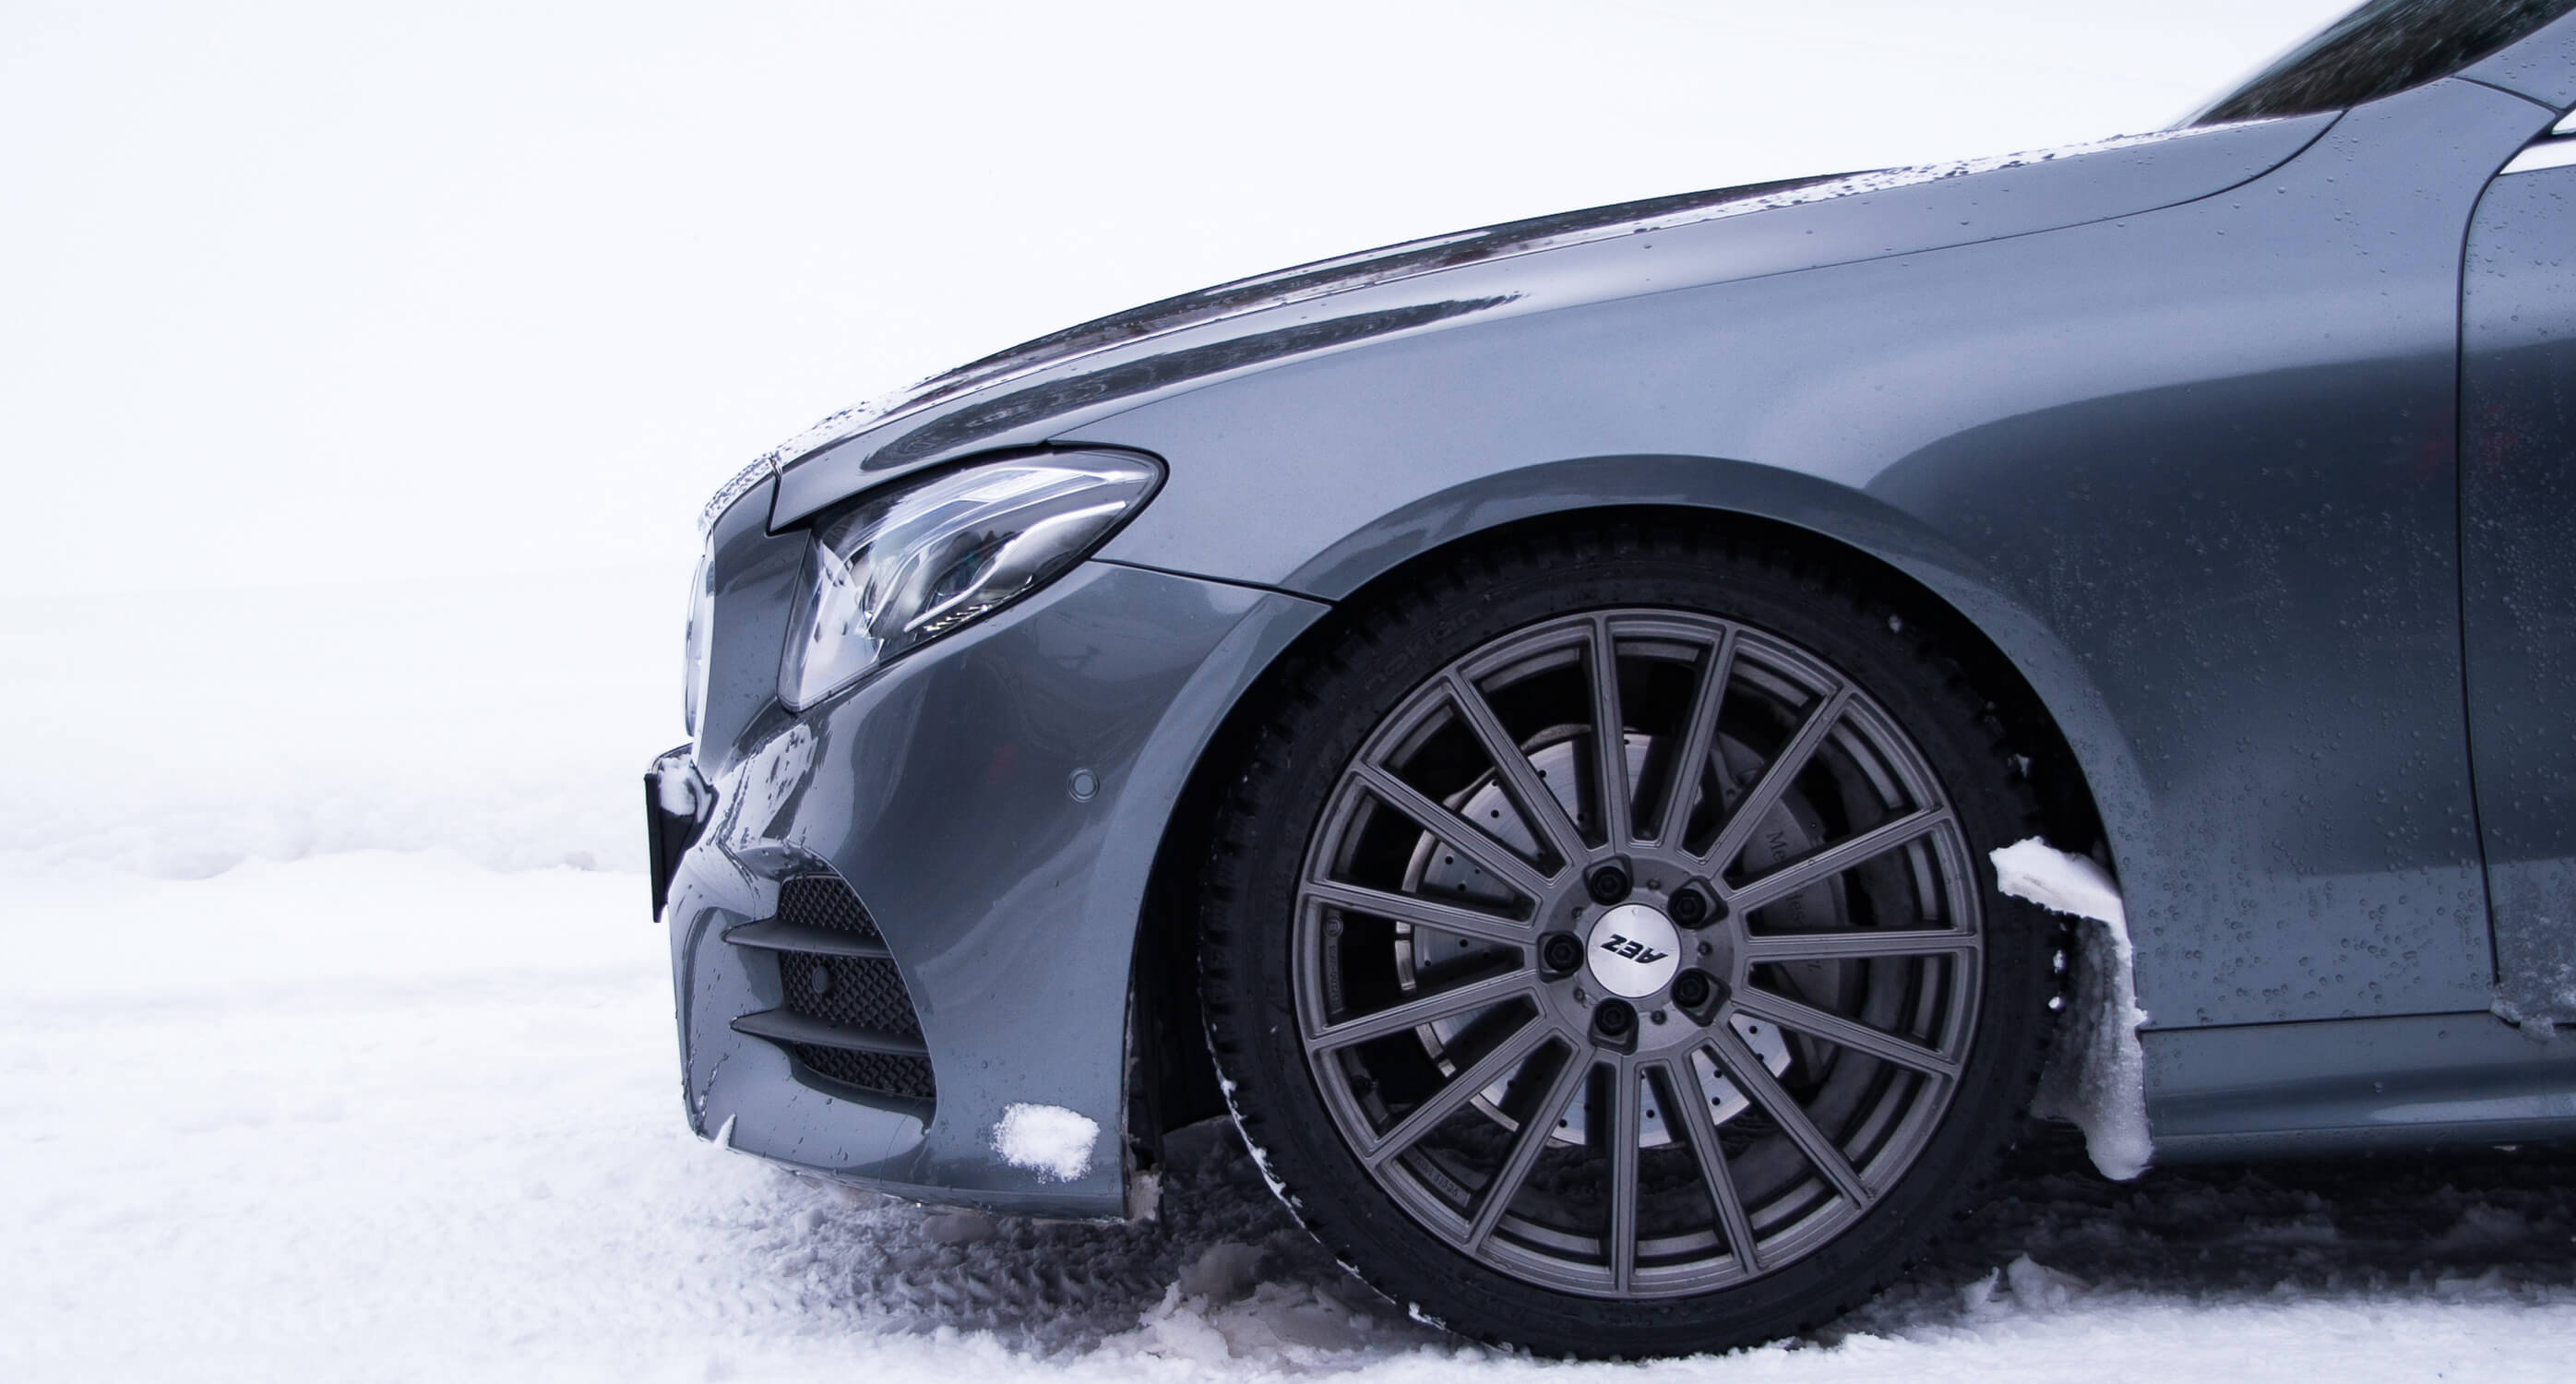 AEZ Wintervideo - Mercedes E-Class - Wheel Detail